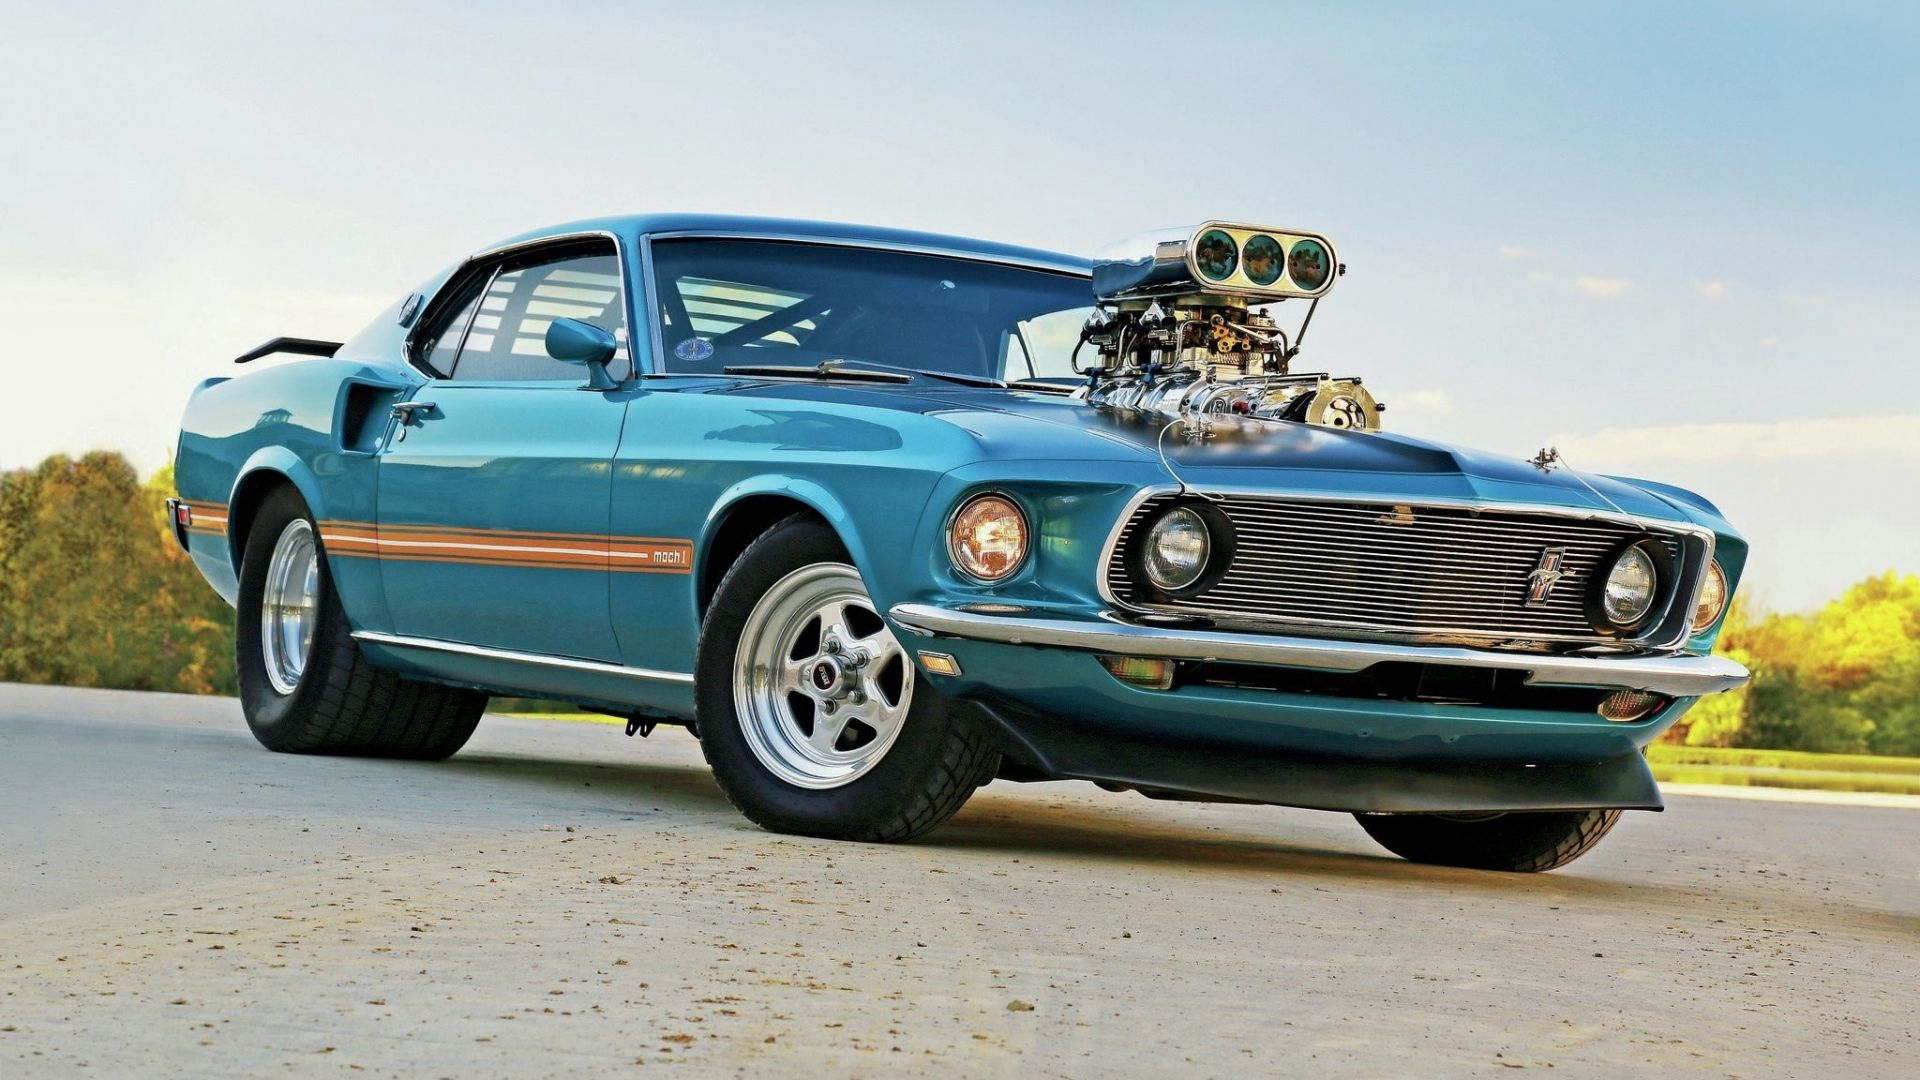 1969 Ford Mustang Muscle Car Wallpapers And Backgrounds Best Car